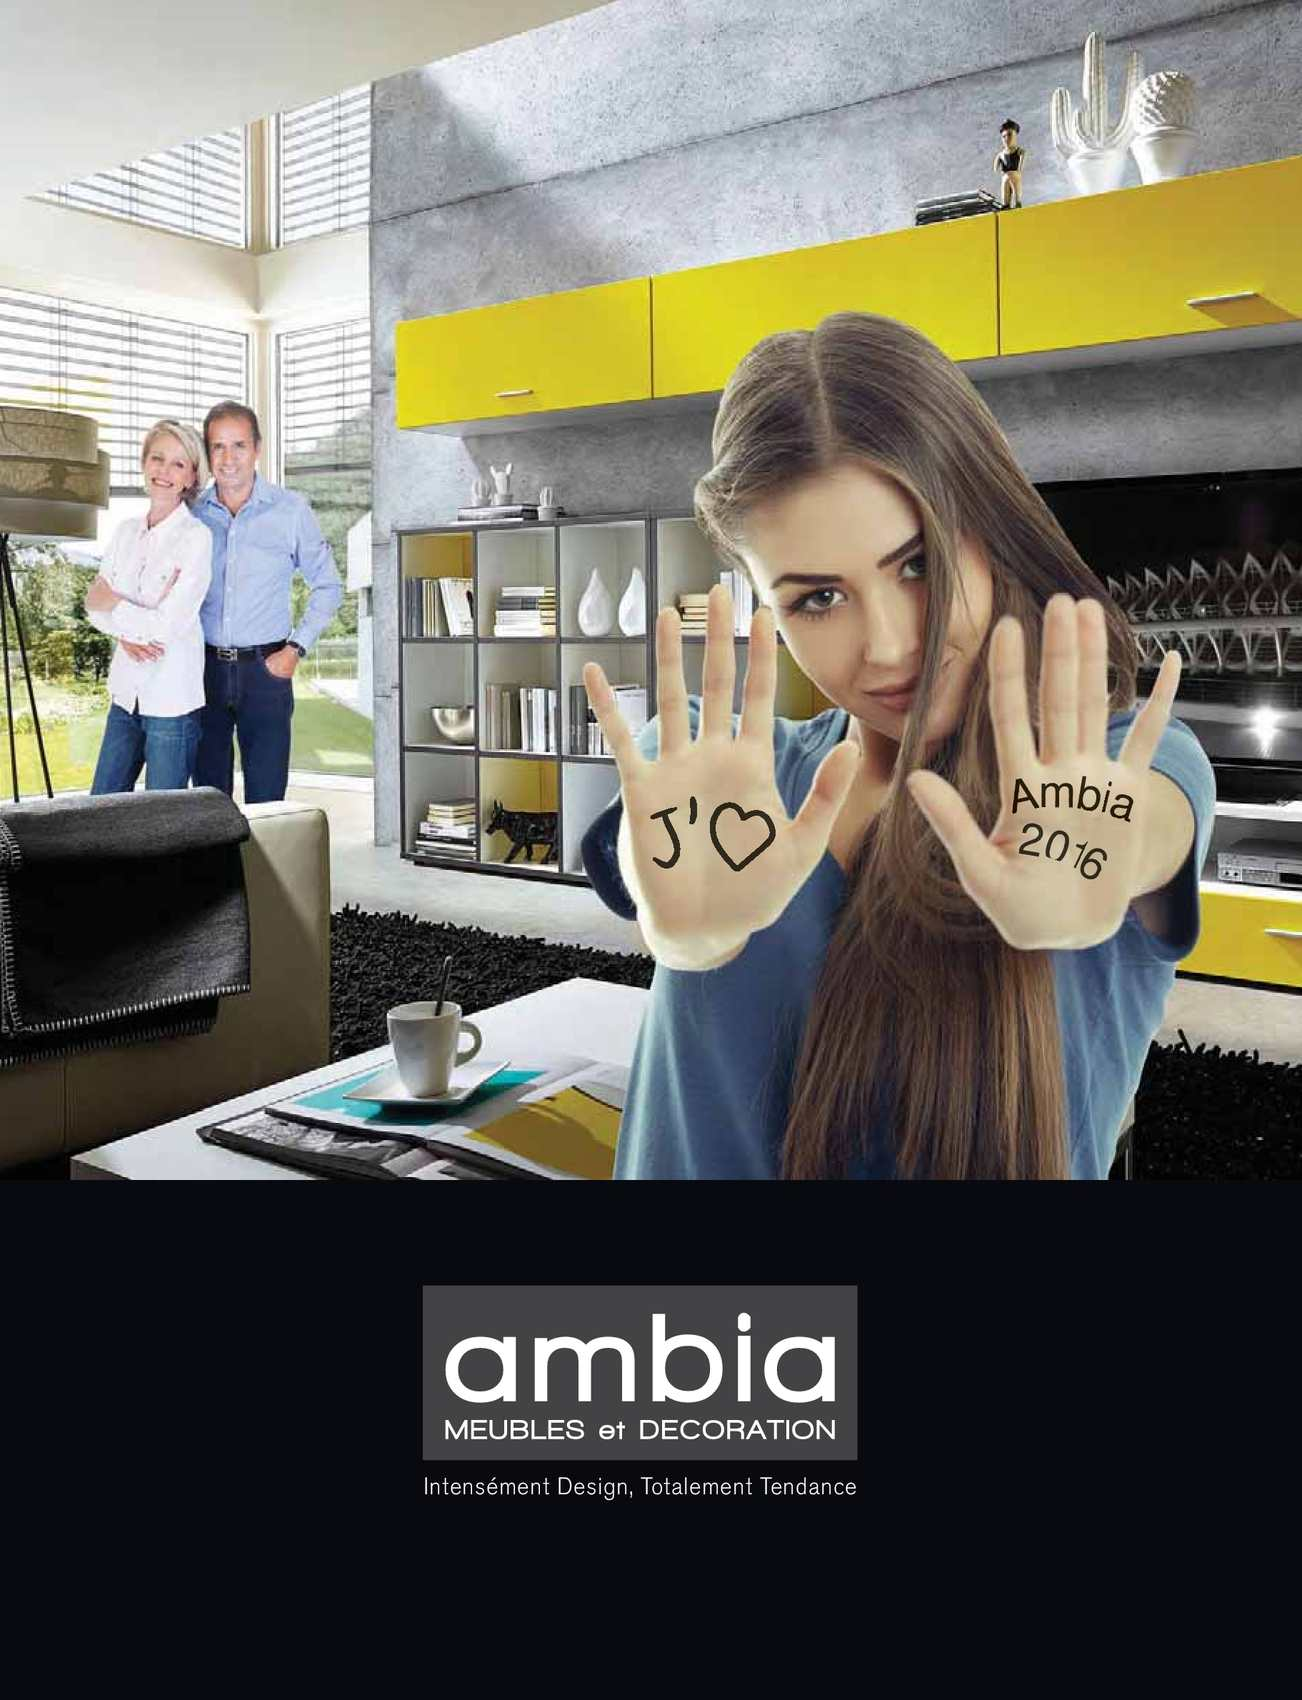 Calam o catalogue ambia 2016 for Meuble ambia